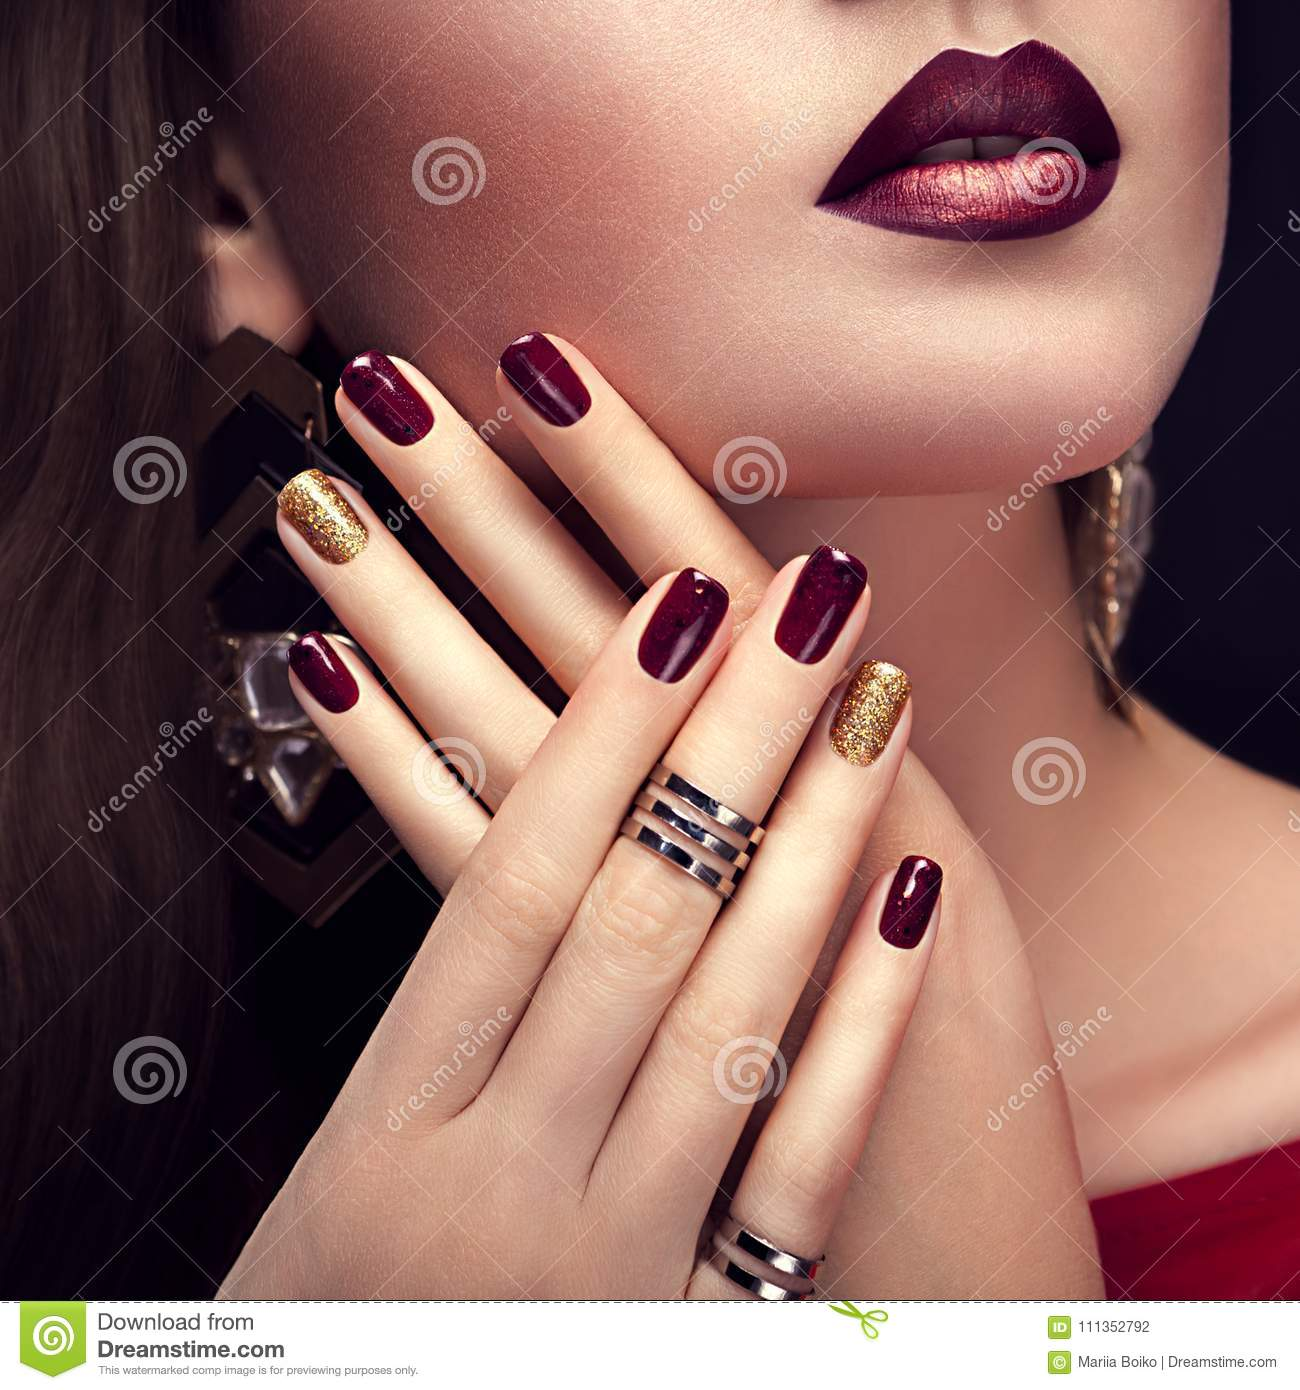 Beautiful woman with perfect make-up and burgundy and golden manicure wearing jewellery